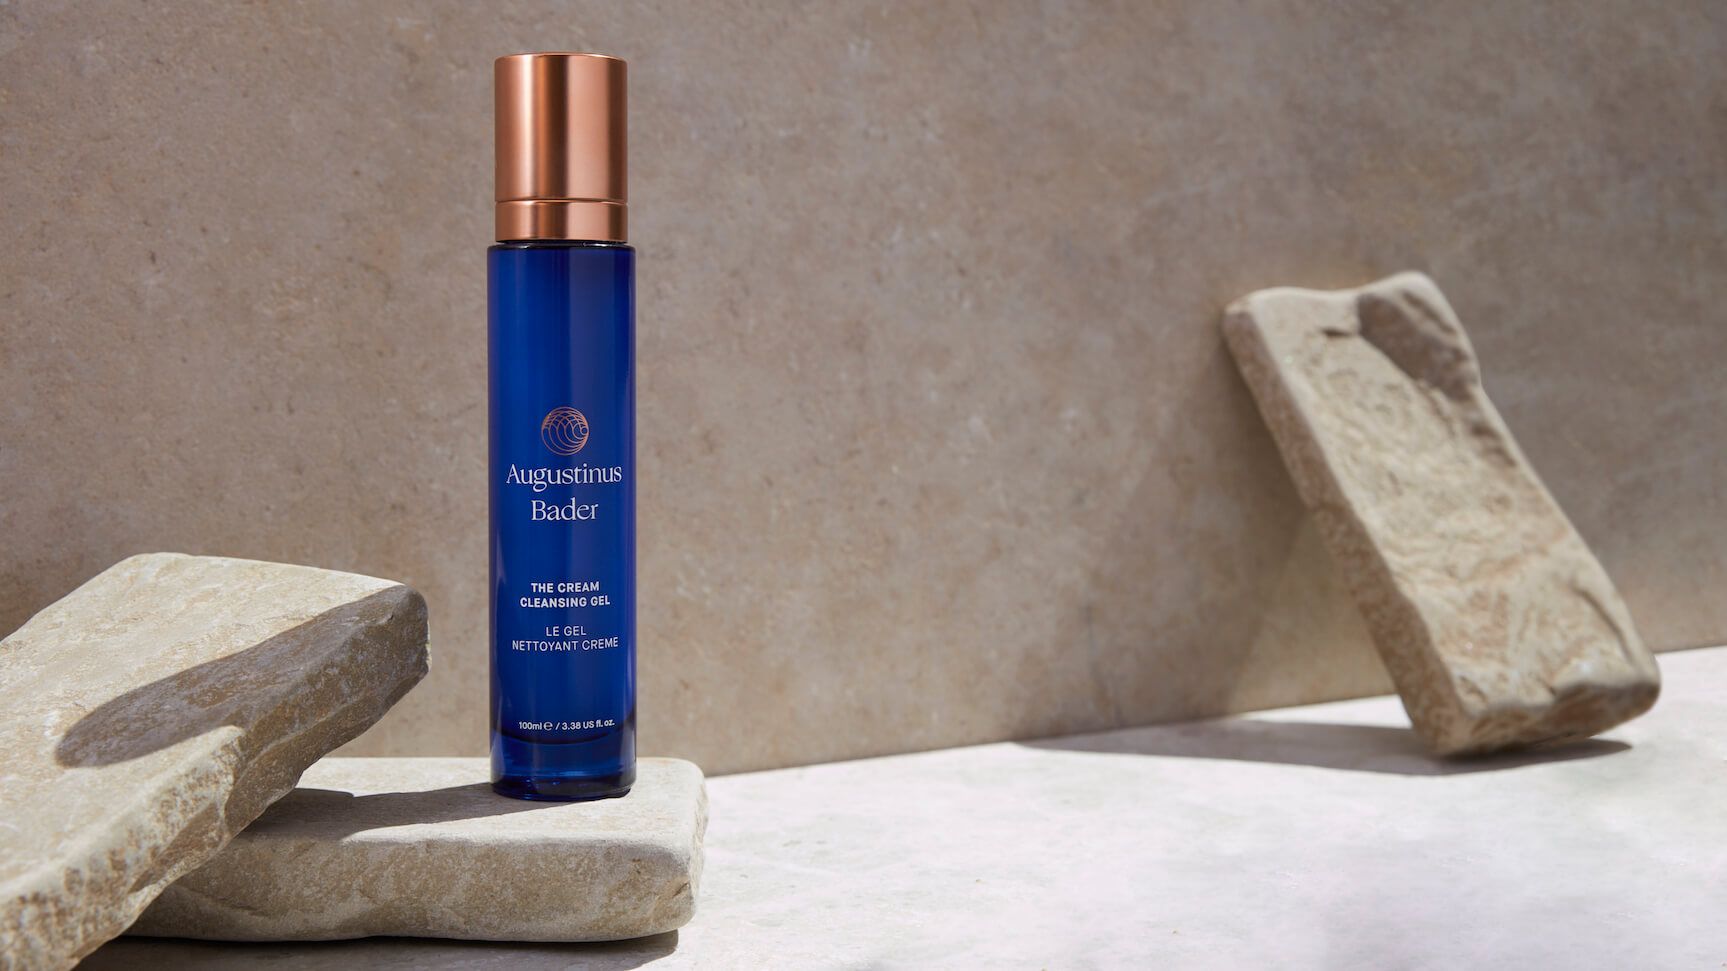 ab_the-cream-cleansing-gel-4-resize